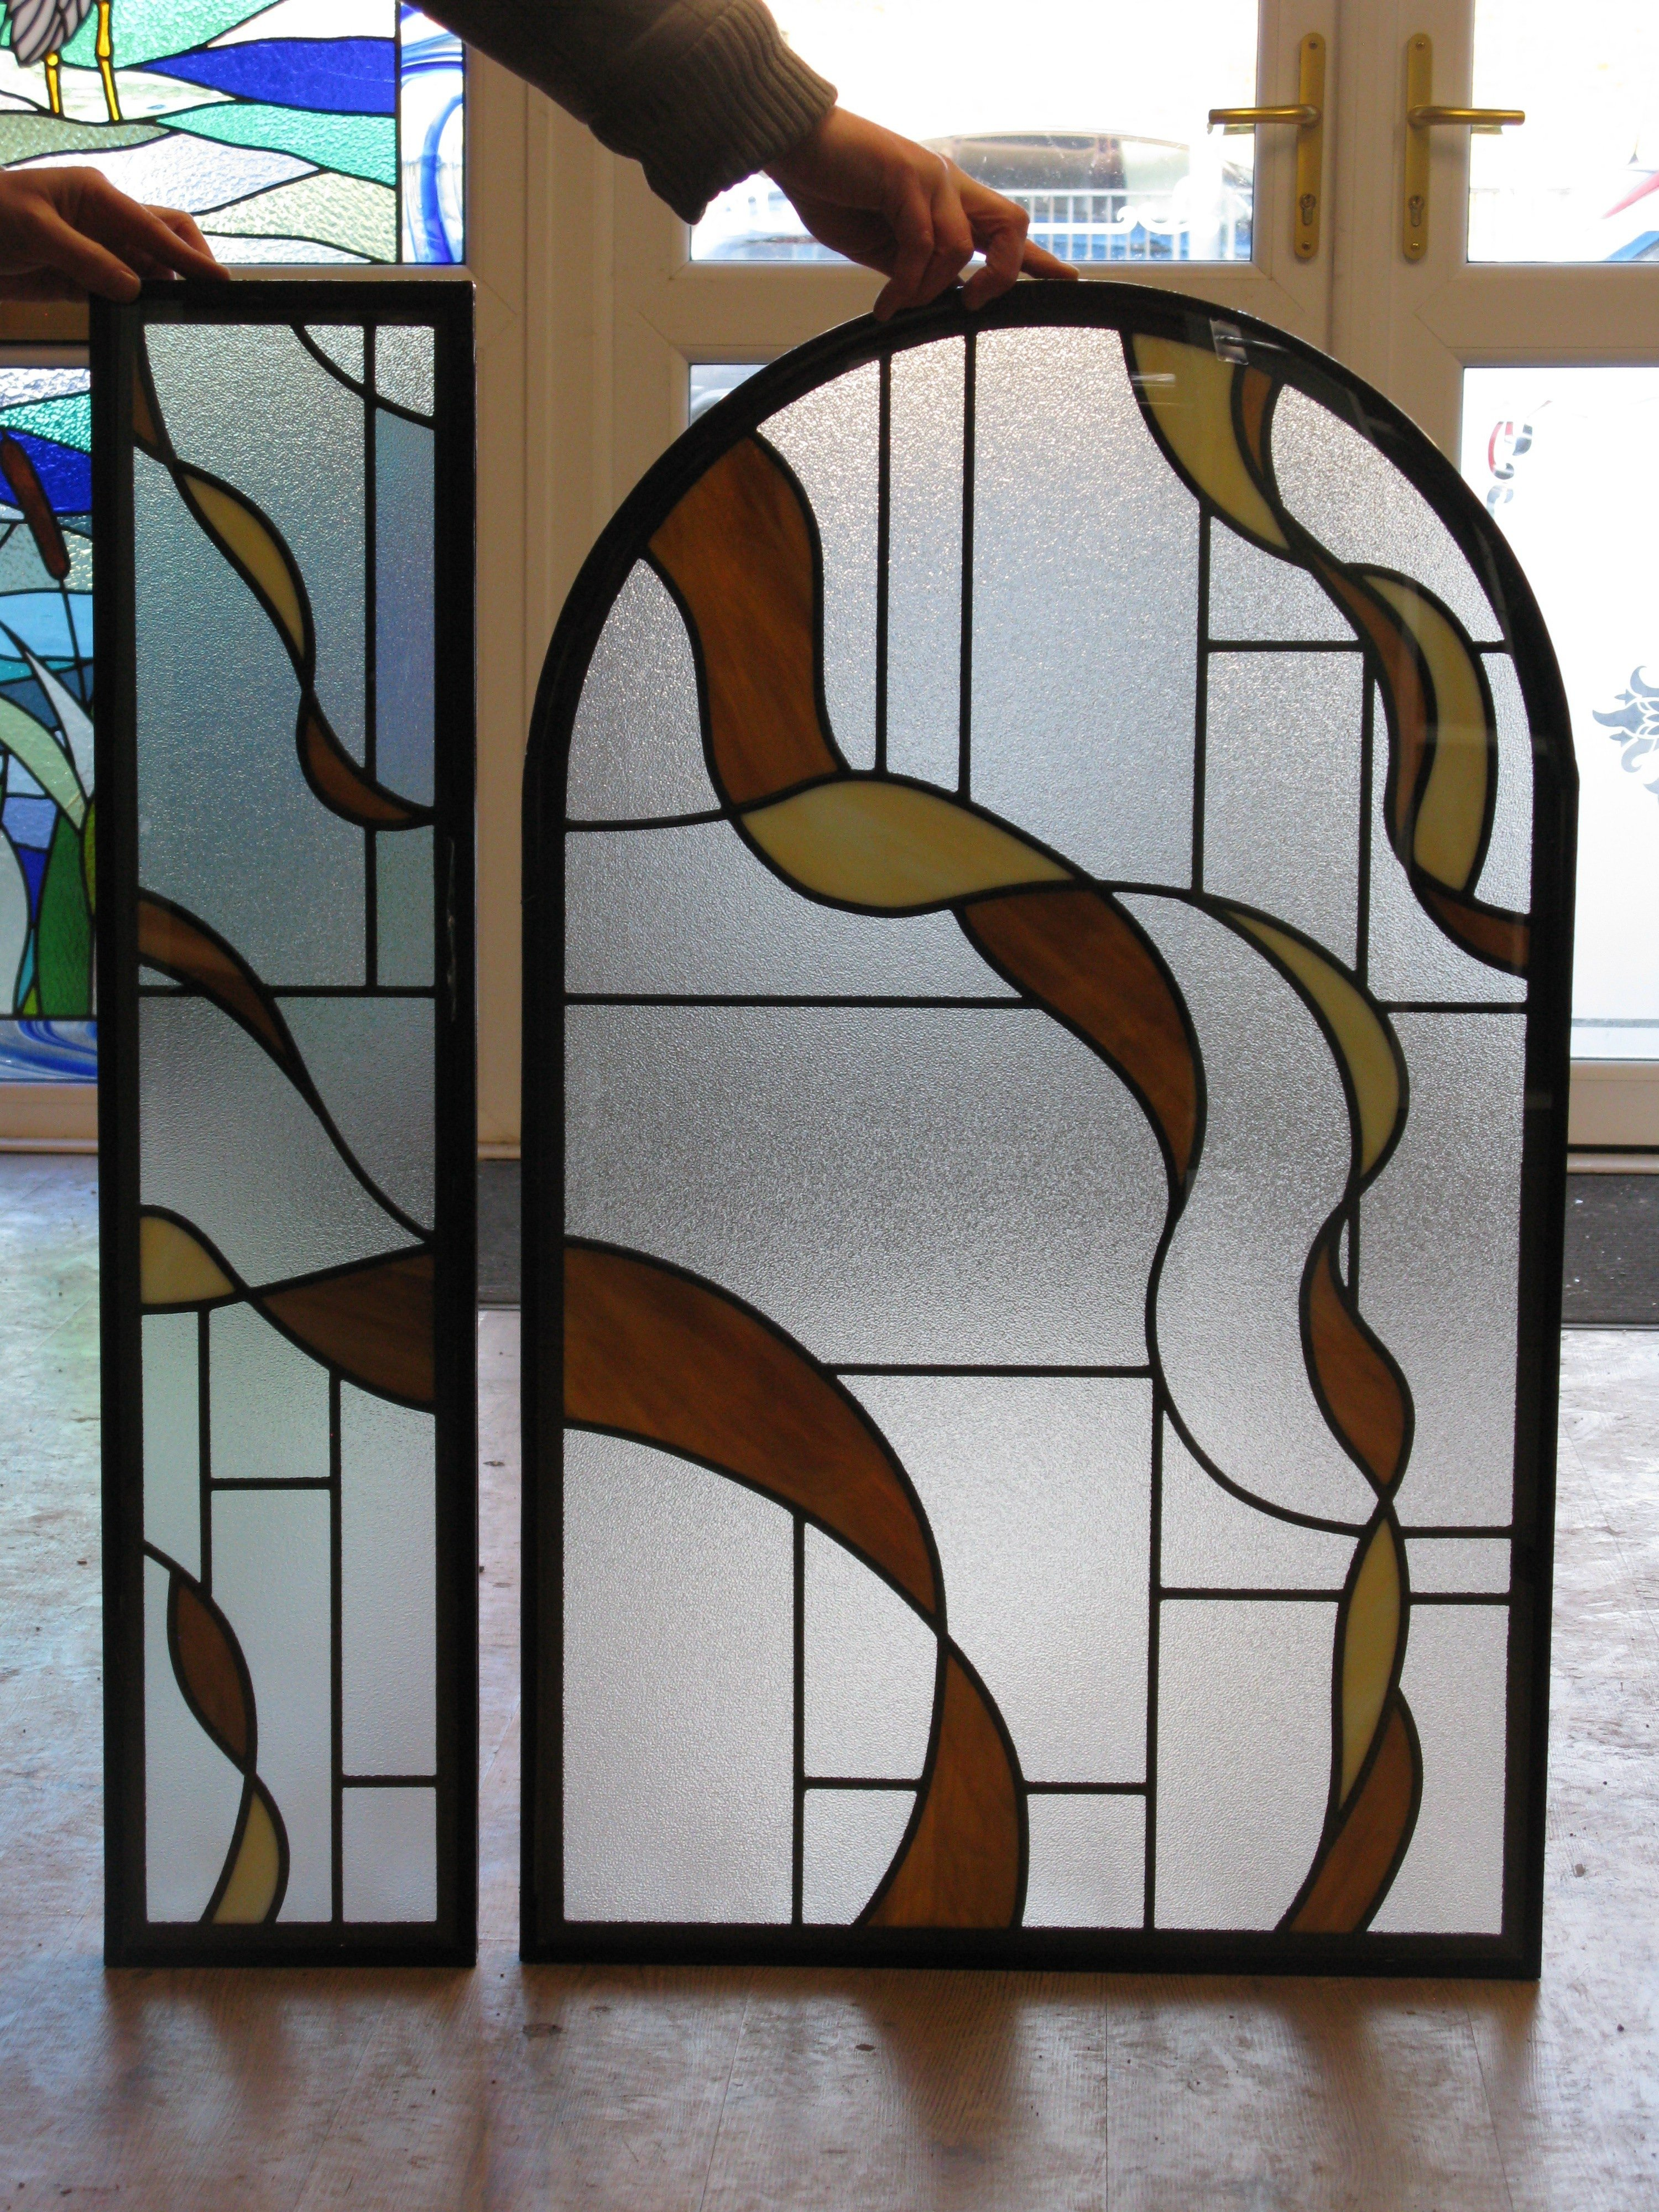 brown and creme coloured stained glass door panel